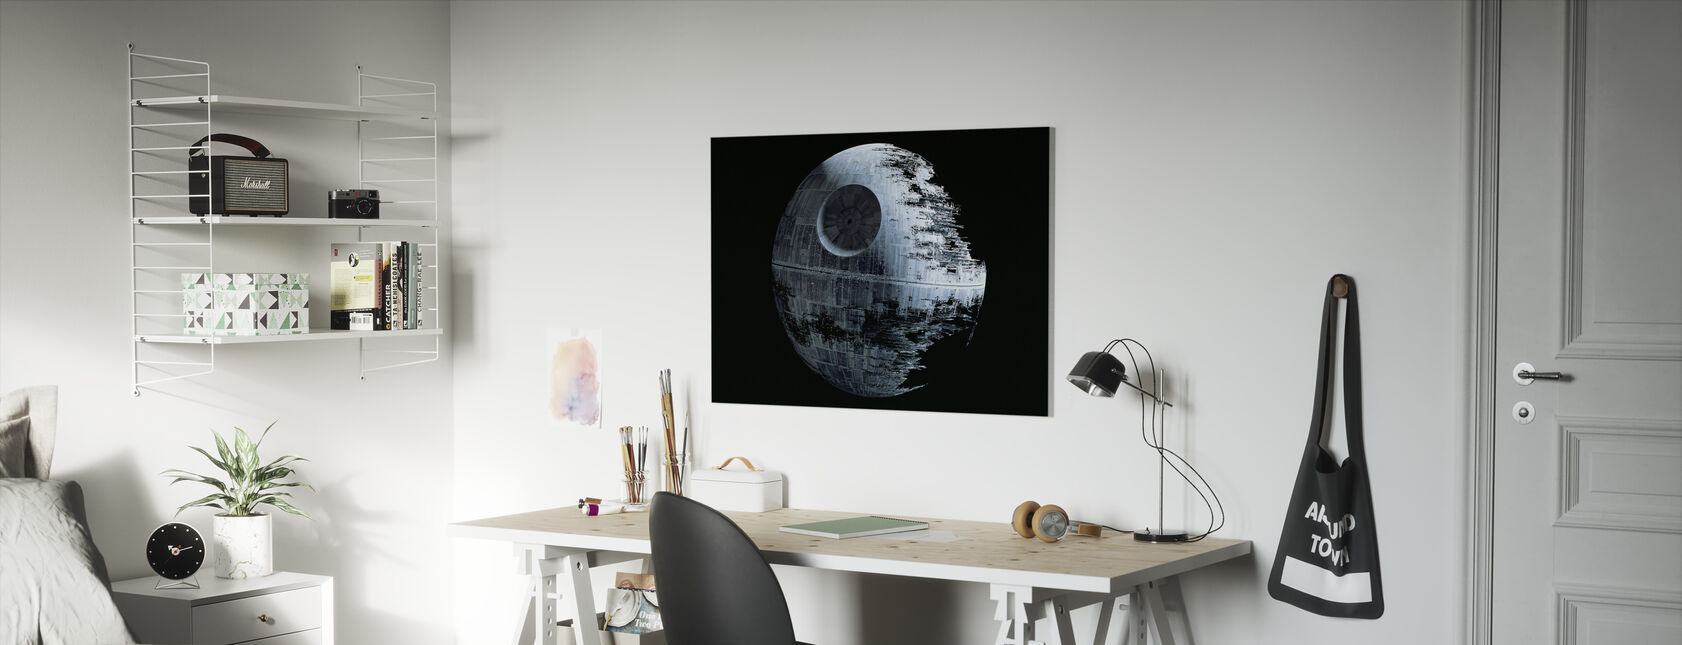 Star Wars - Death Star 2 - Canvastavla - Barnrum